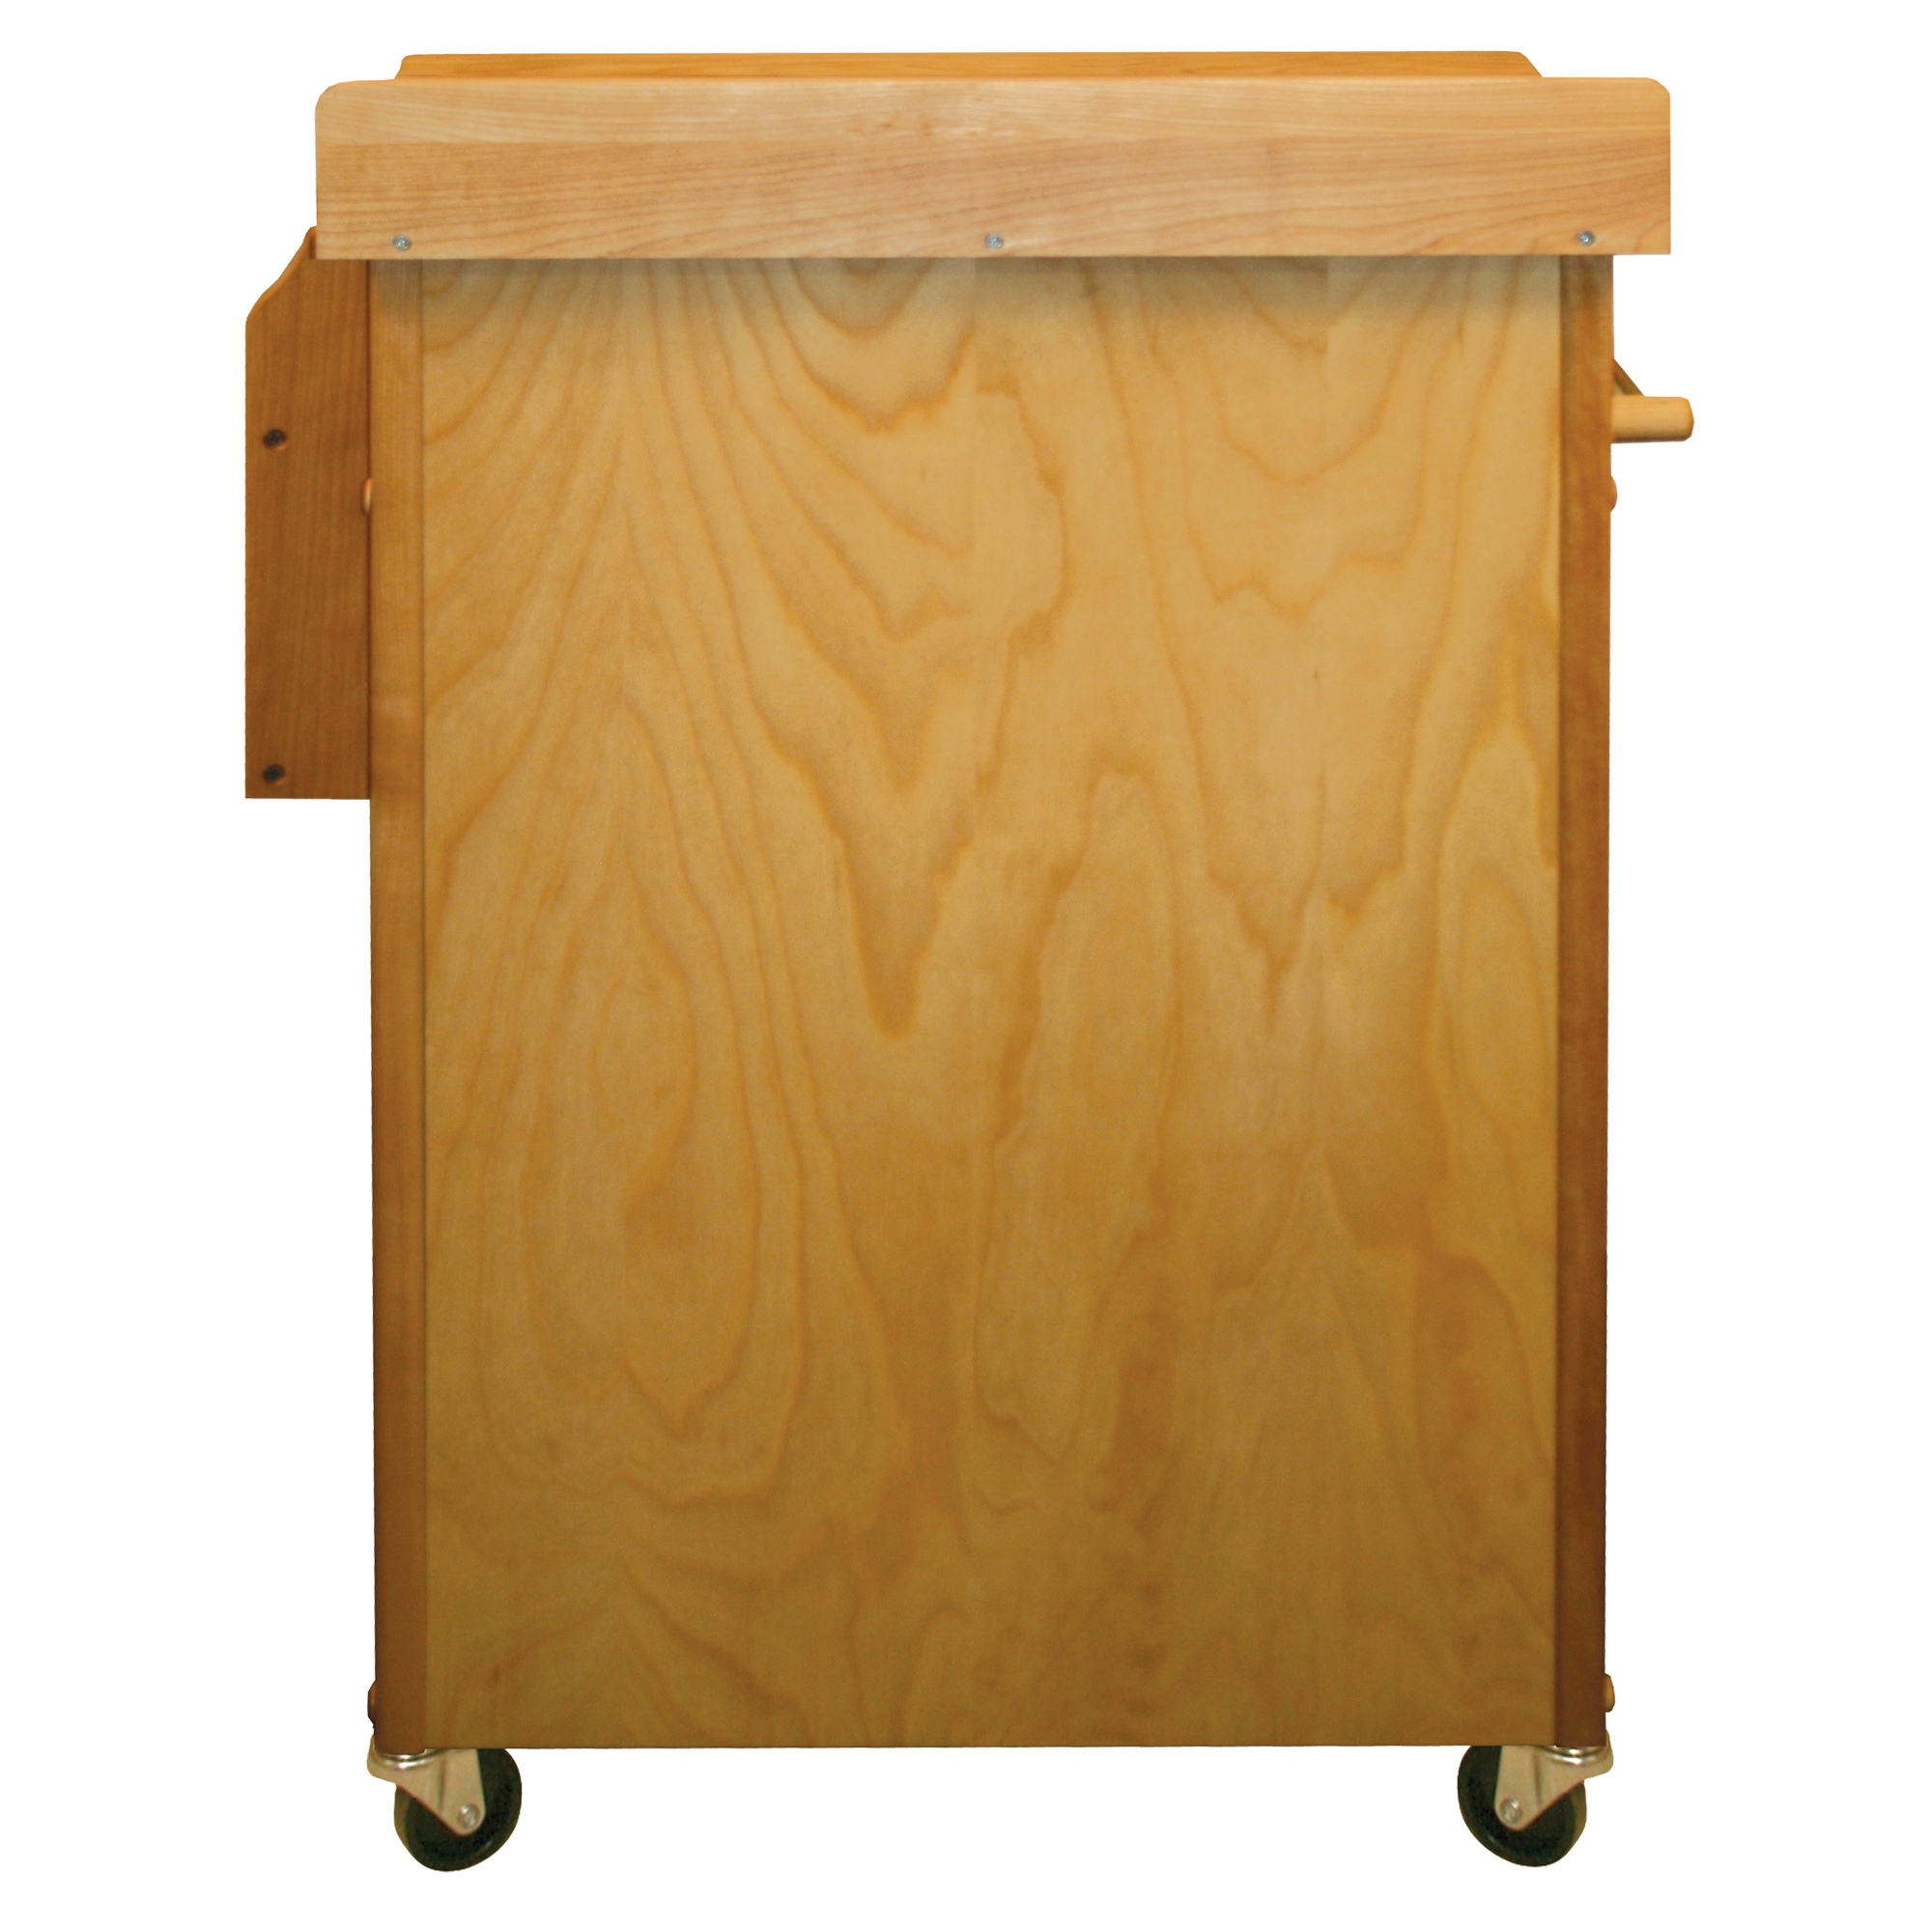 rear view of catskill butcher block cart with back splash